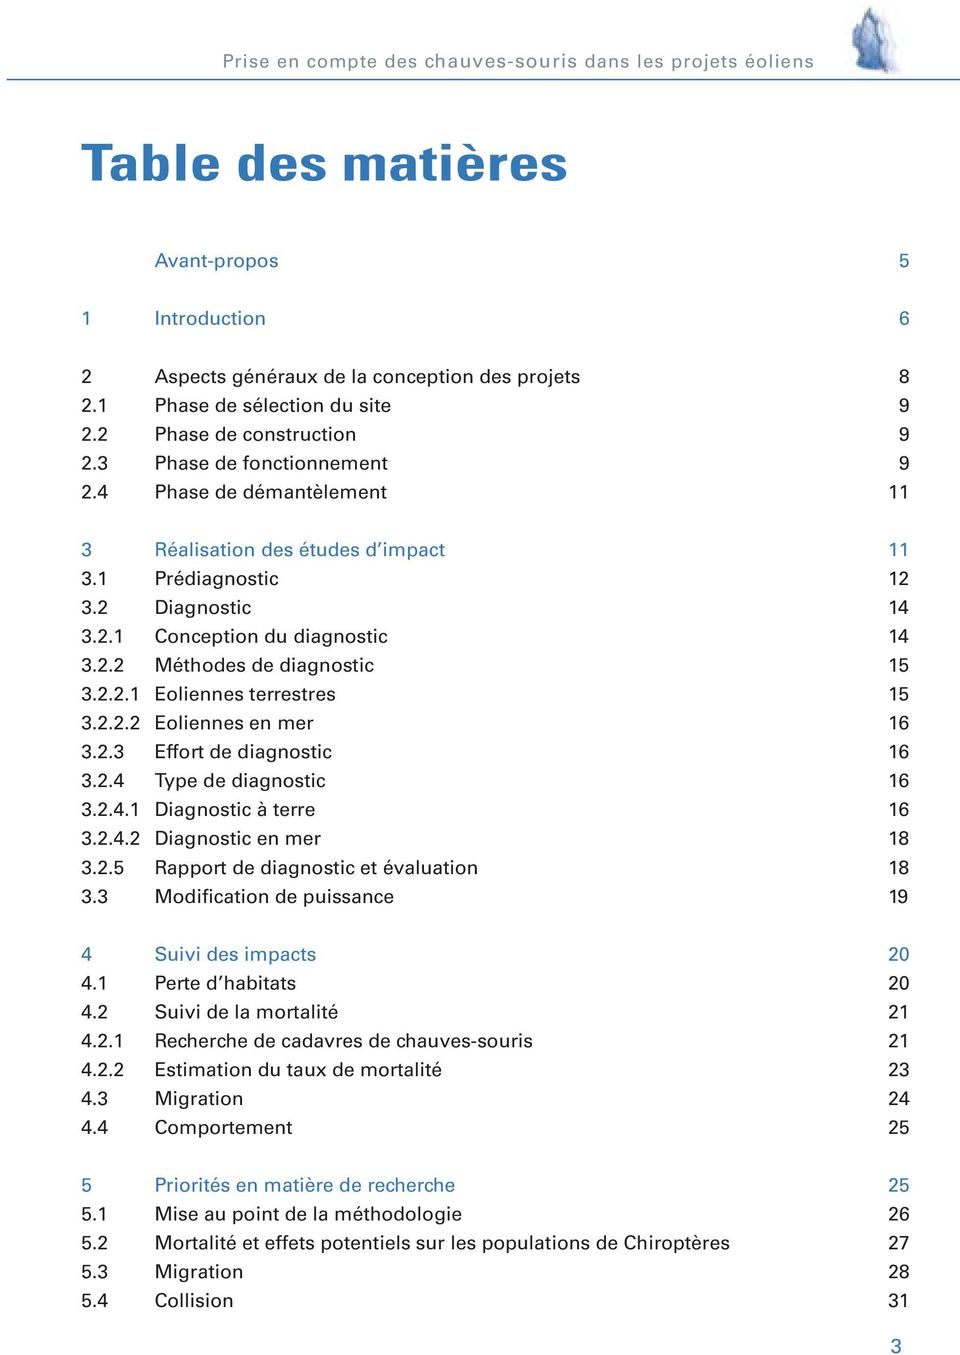 2.2.2 Eoliennes en mer 16 3.2.3 Effort de diagnostic 16 3.2.4 Type de diagnostic 16 3.2.4.1 Diagnostic à terre 16 3.2.4.2 Diagnostic en mer 18 3.2.5 Rapport de diagnostic et évaluation 18 3.